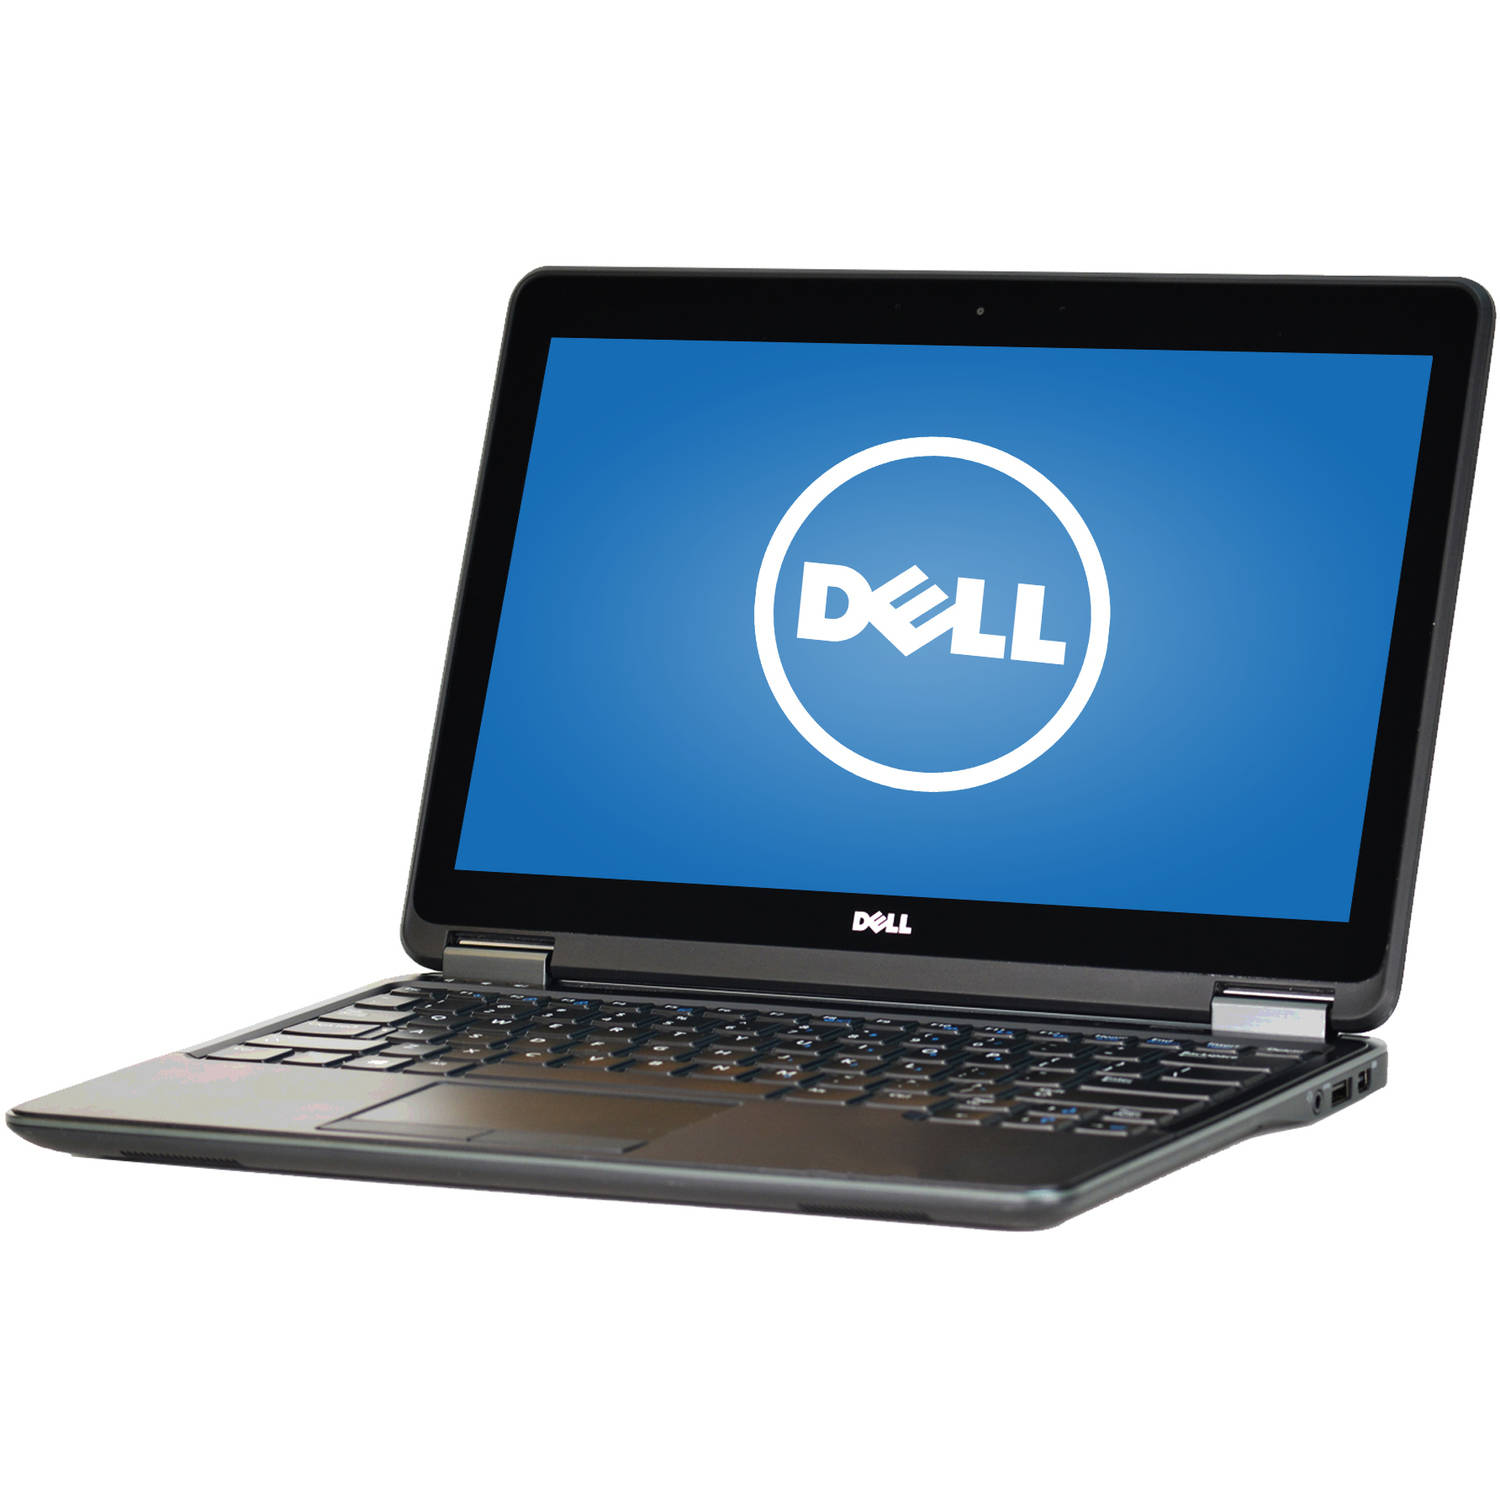 Refurbished Dell Latitude E7240 12.5 Laptop, Windows 10 Pro, Intel Core i5 - 4200U Processor, 8GB RAM, 128GB Solid State Drive